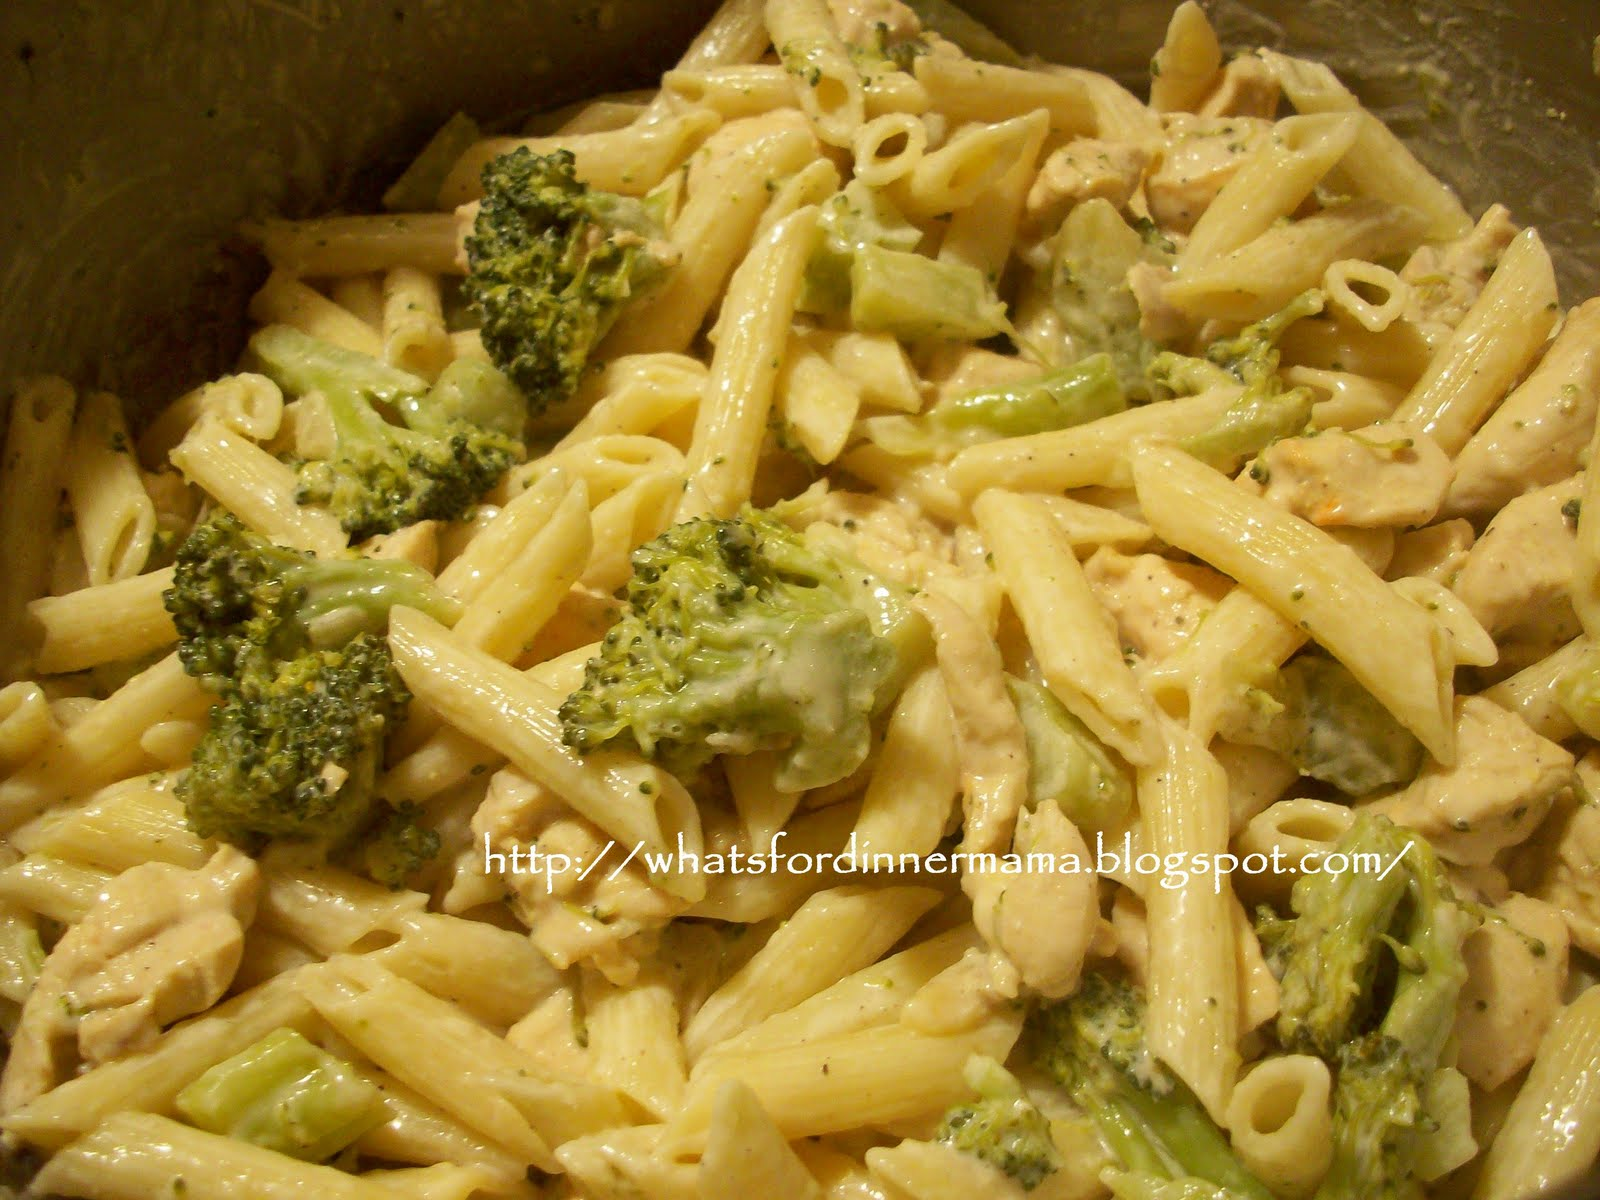 Stir In Philadelphia Creme Sauce Then Drained Broccoli And Lastly Pasta Sprinkle With Cheese When Serving Yumlicious